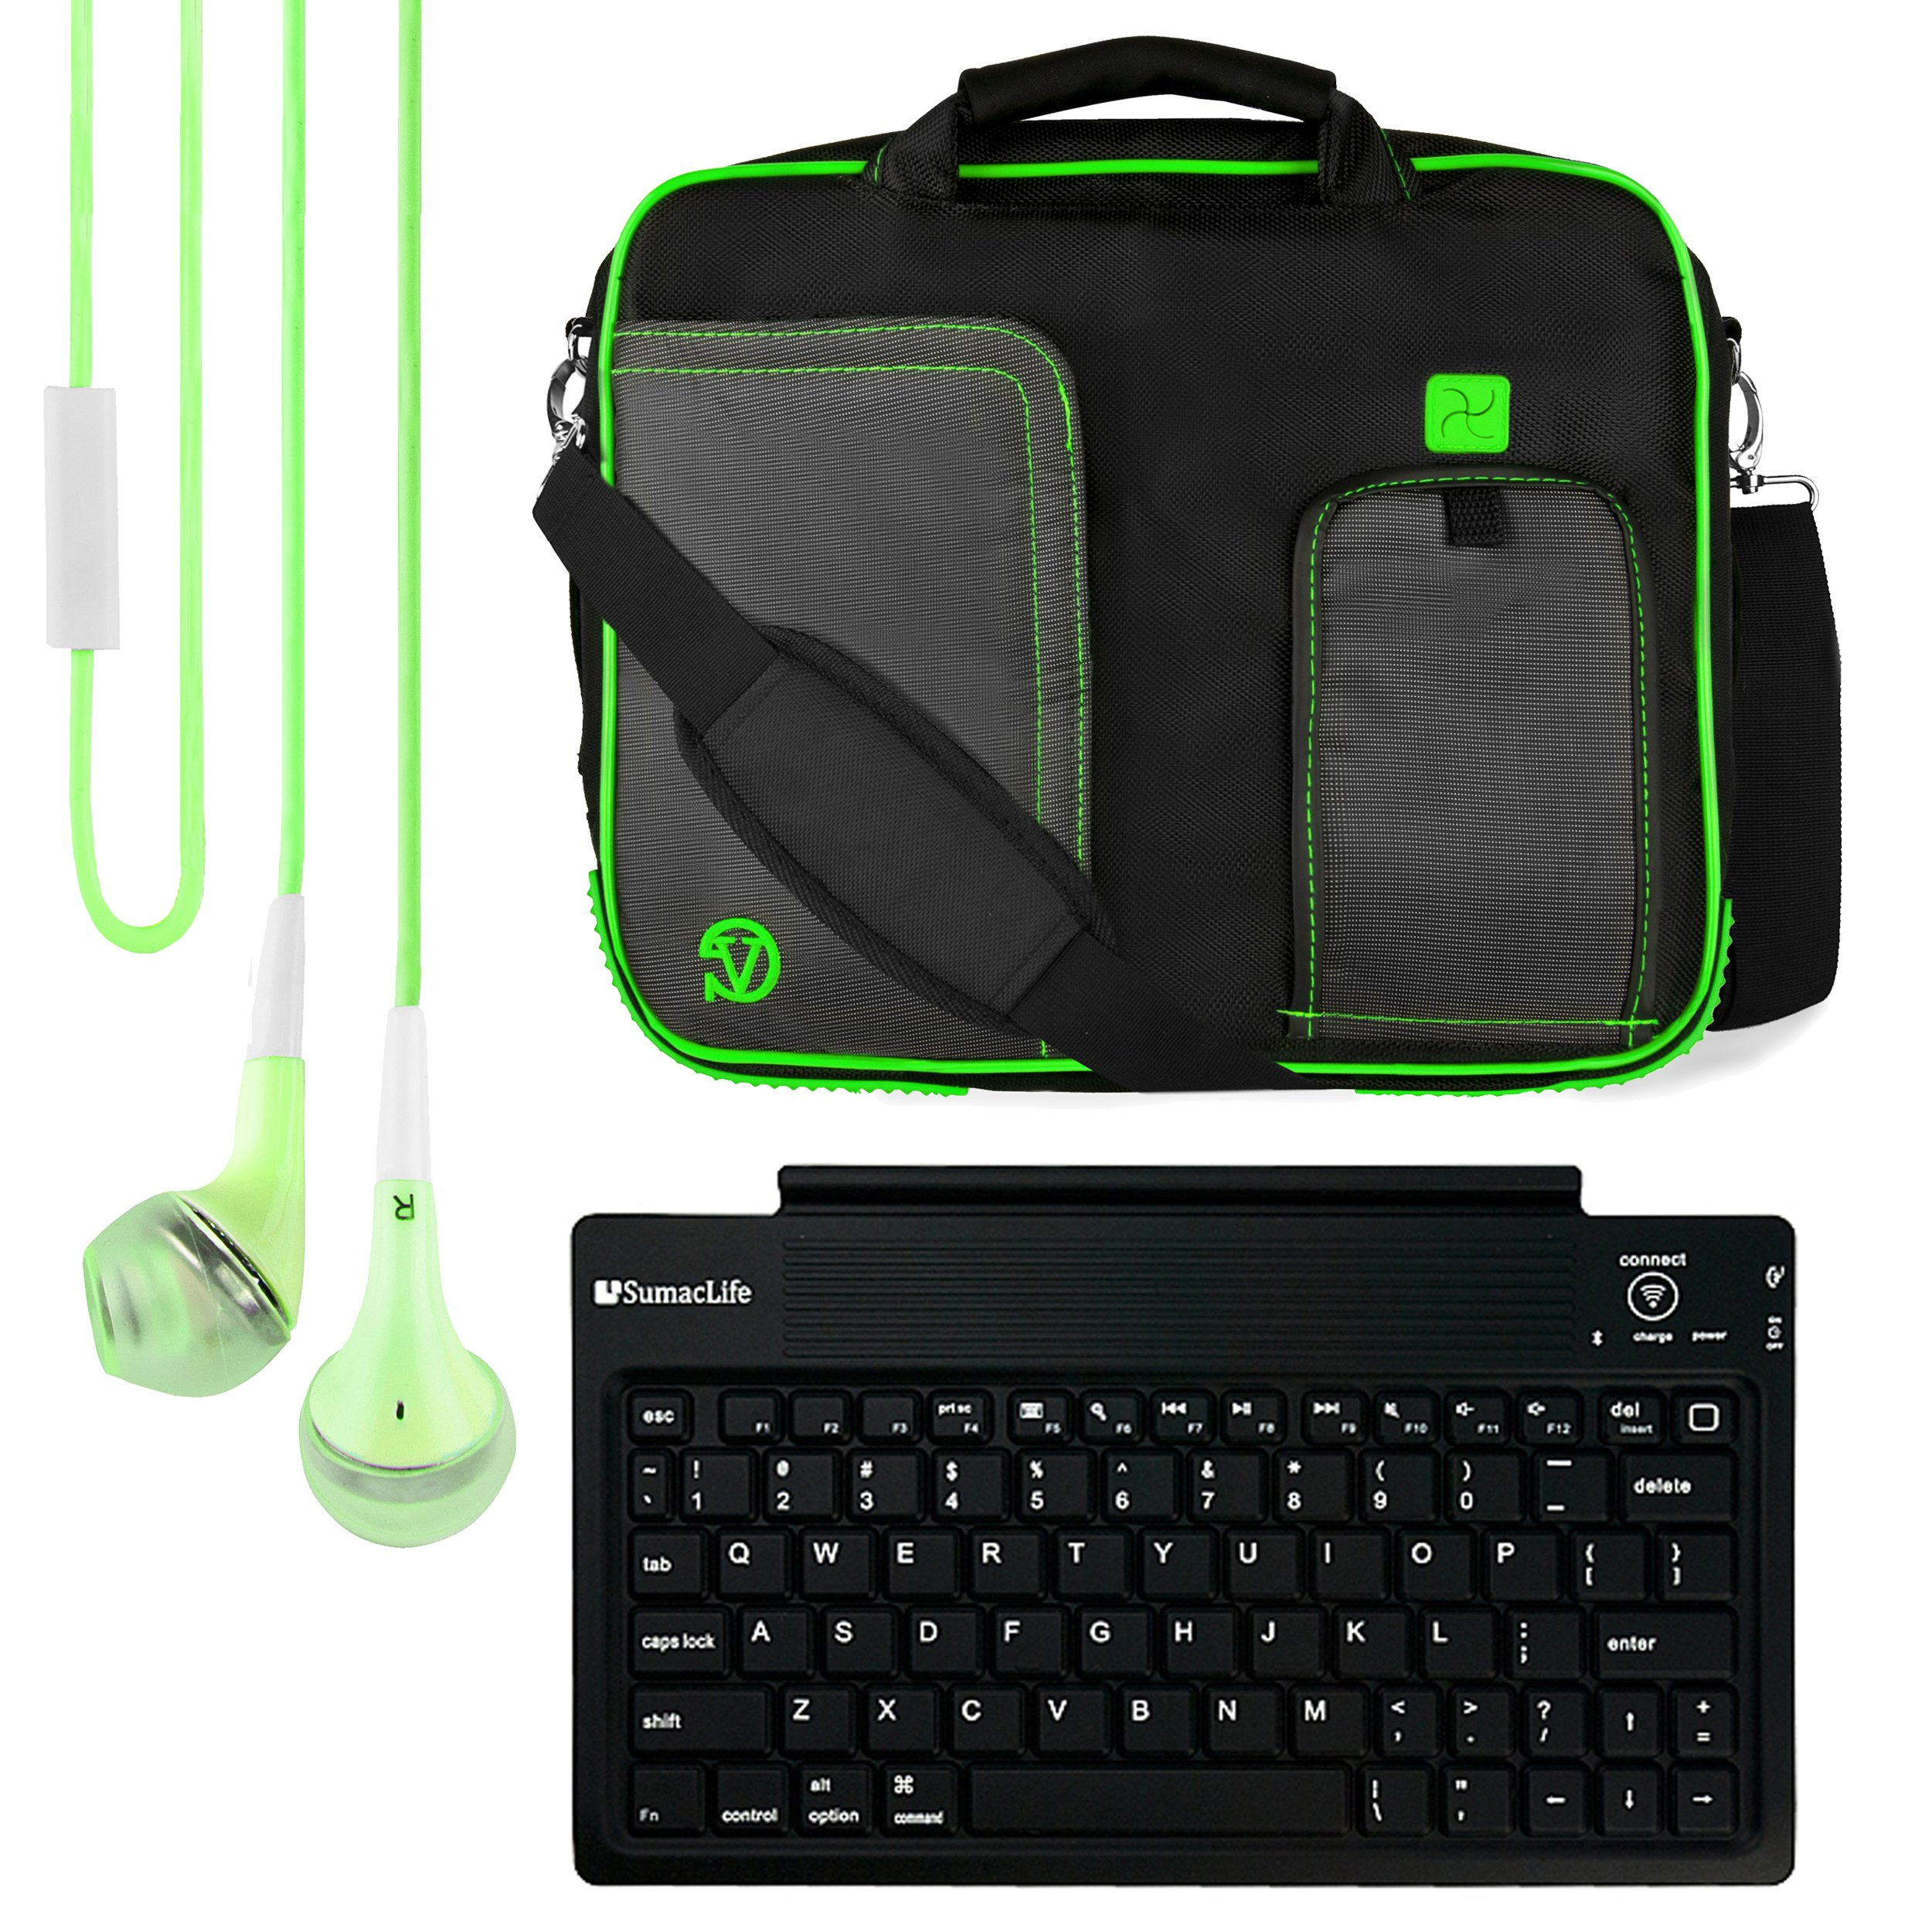 VanGoddy Pindar Messenger Carrying Bag for Samsung Galaxy Note PRO 12.2/Samsung Galaxy Tab PRO 12.2'' Tablets + Bluetooth Keyboard + Headphones (Green) by Vangoddy (Image #1)